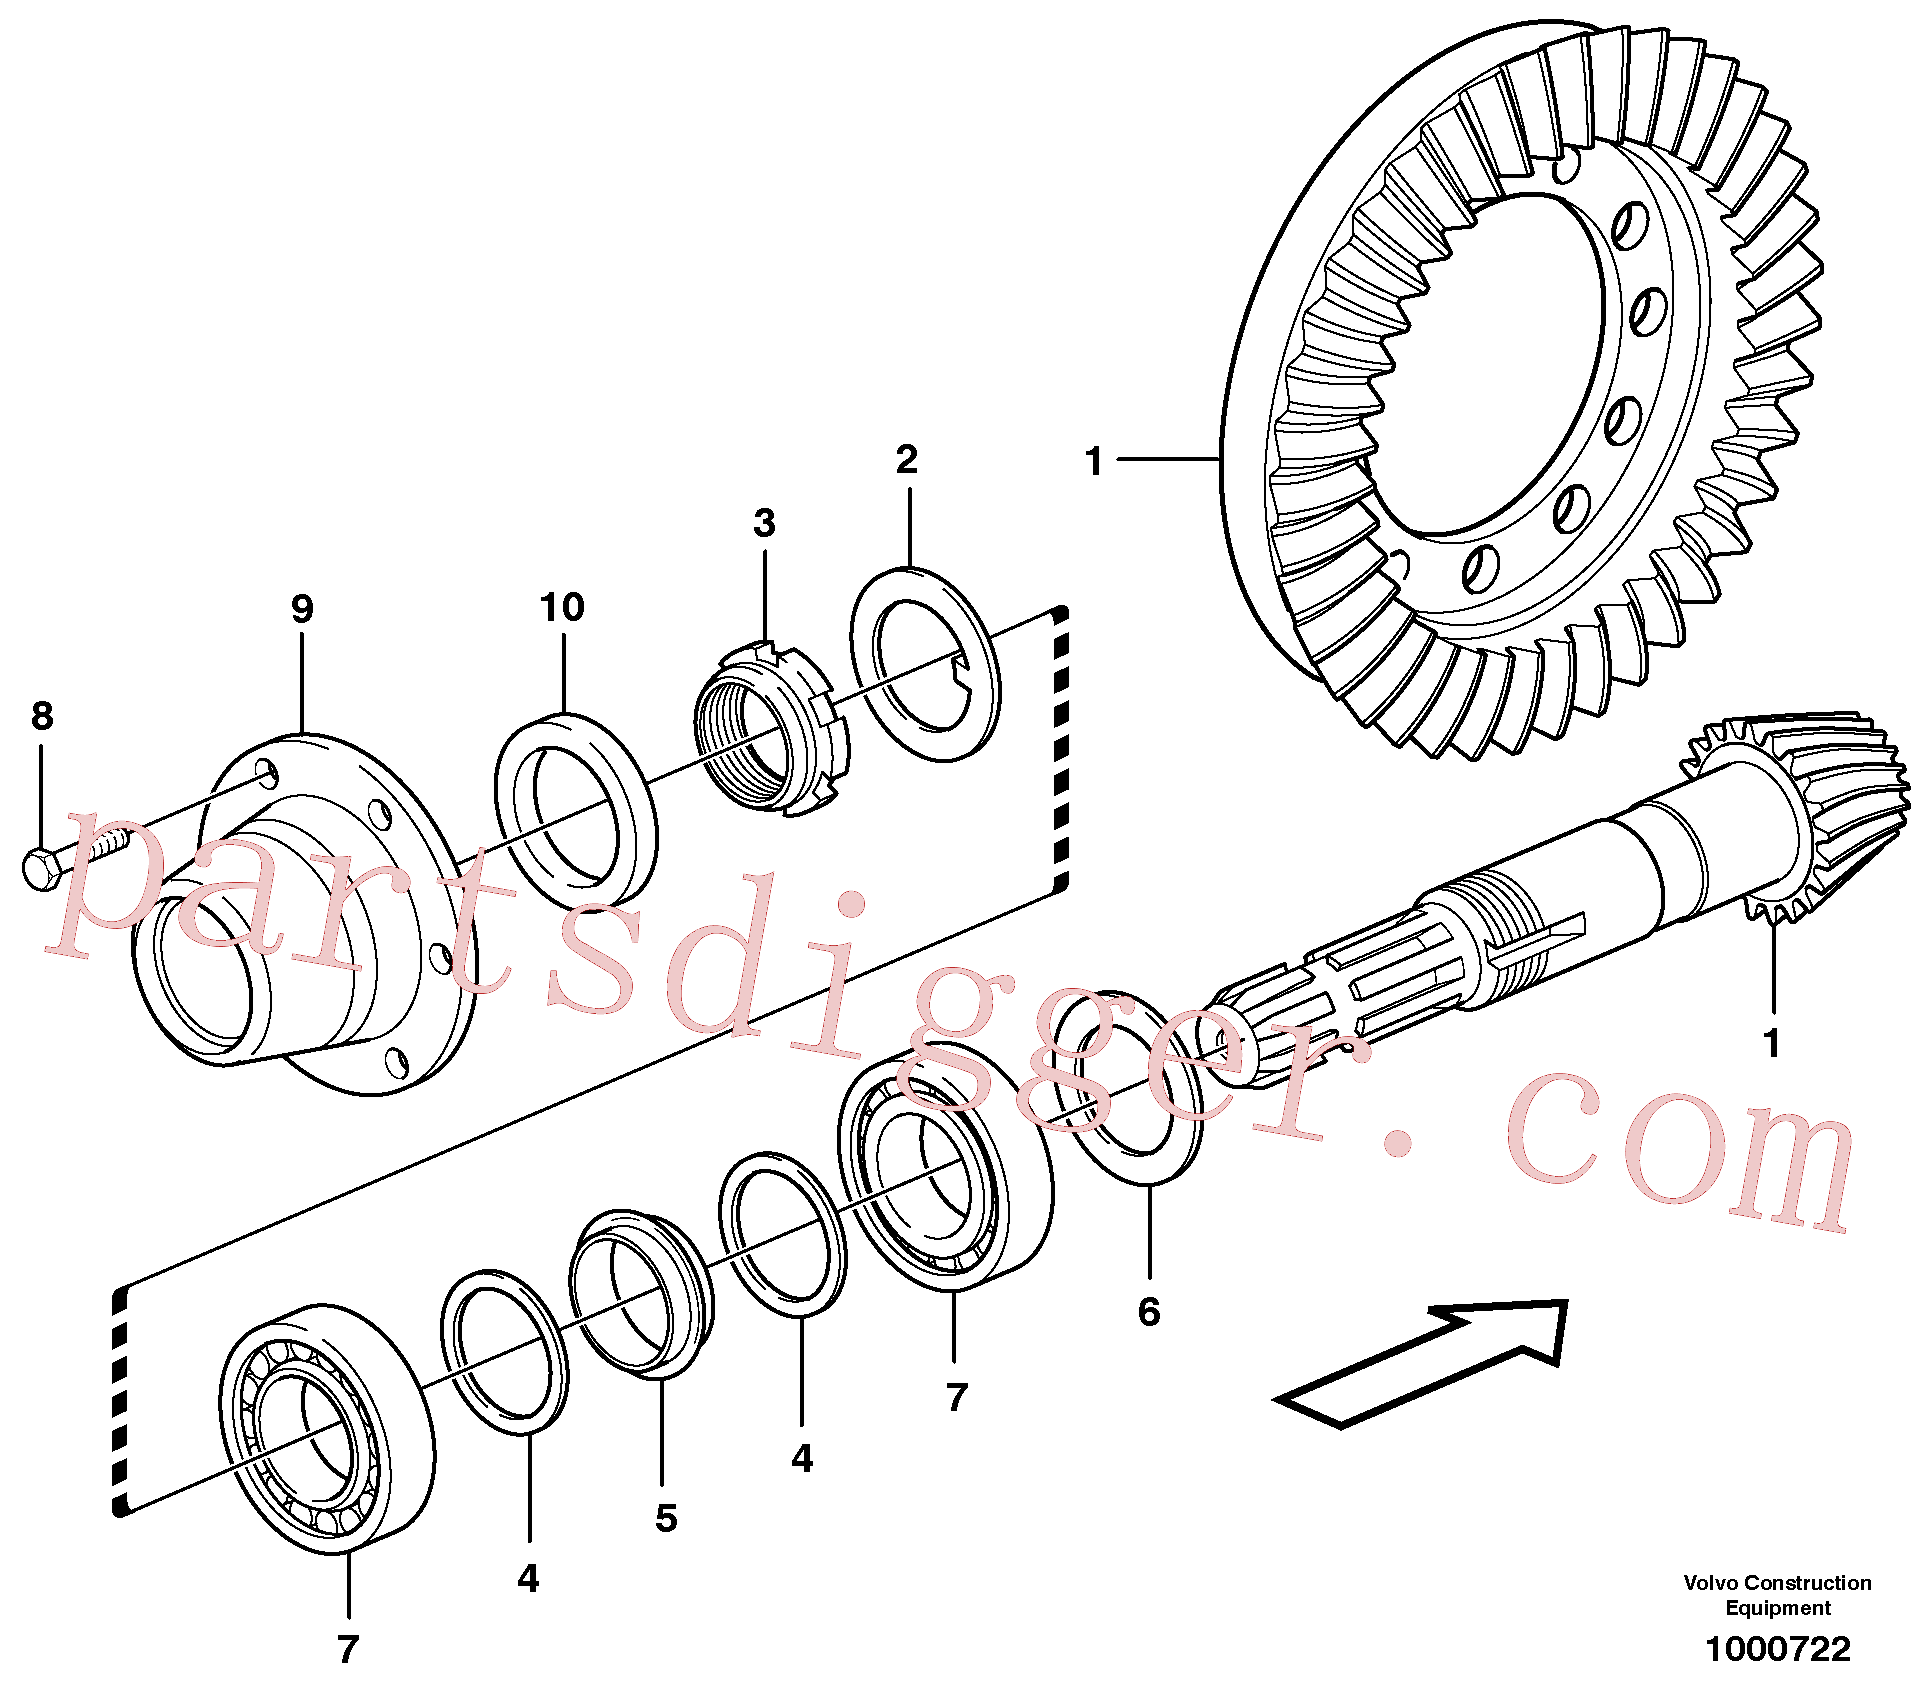 VOE11709290 for Volvo Pinion(1000722 assembly)